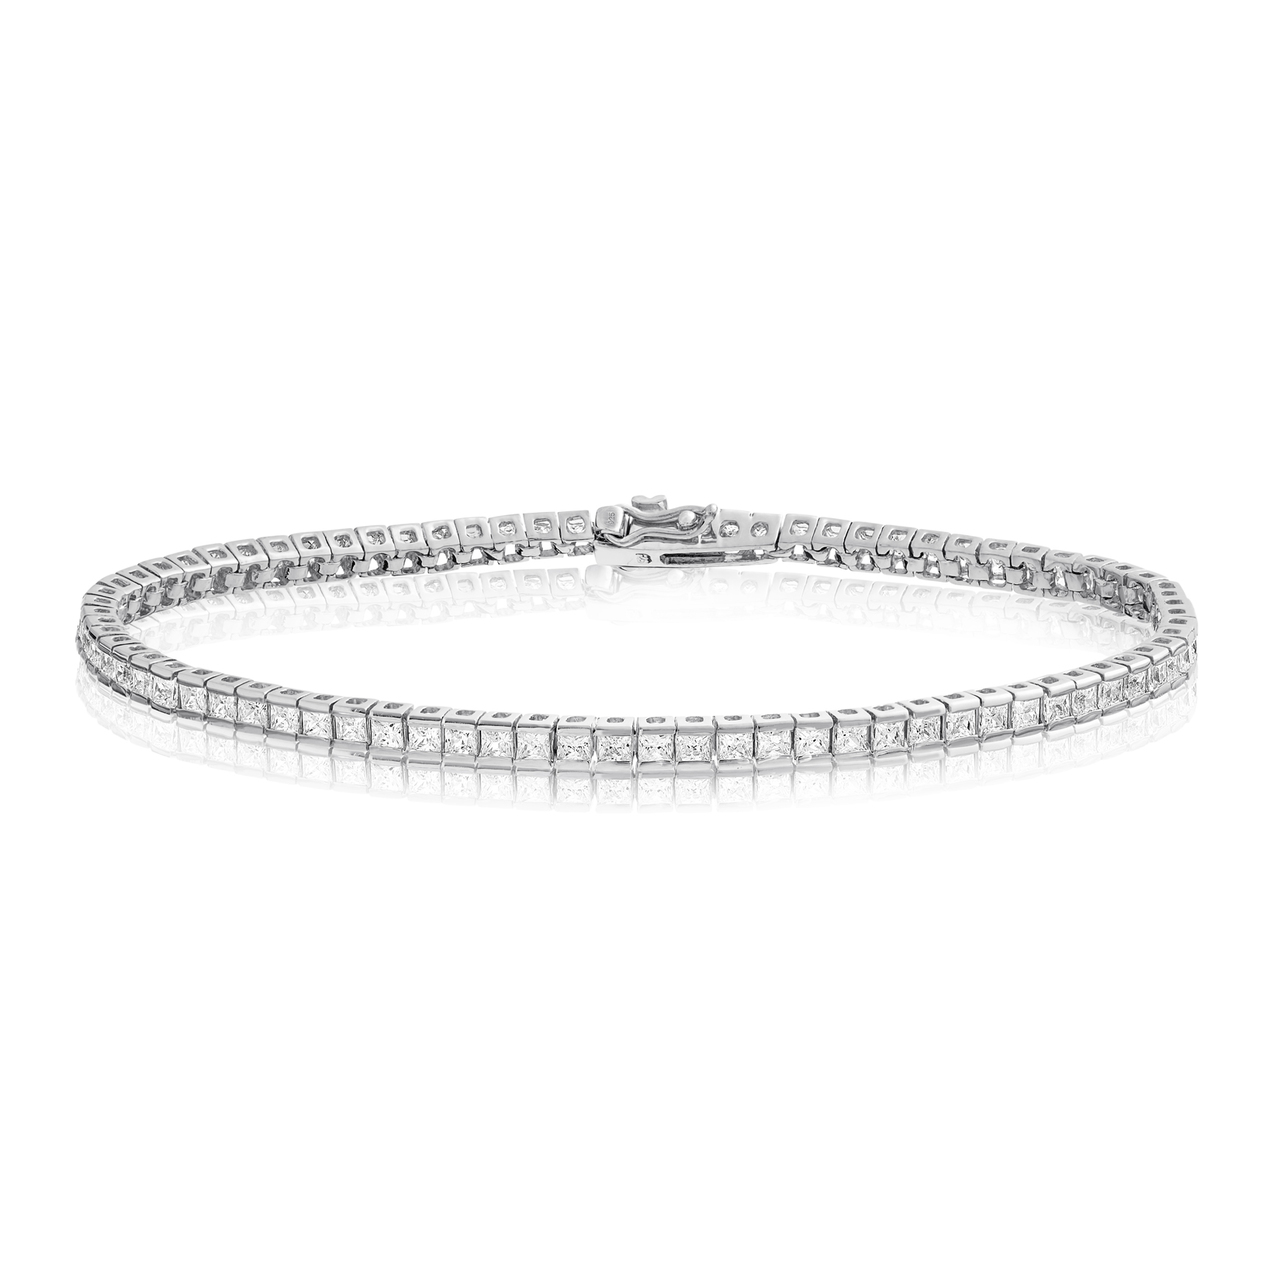 bracelet inch tennis sterling round black rhodium cz silver plated